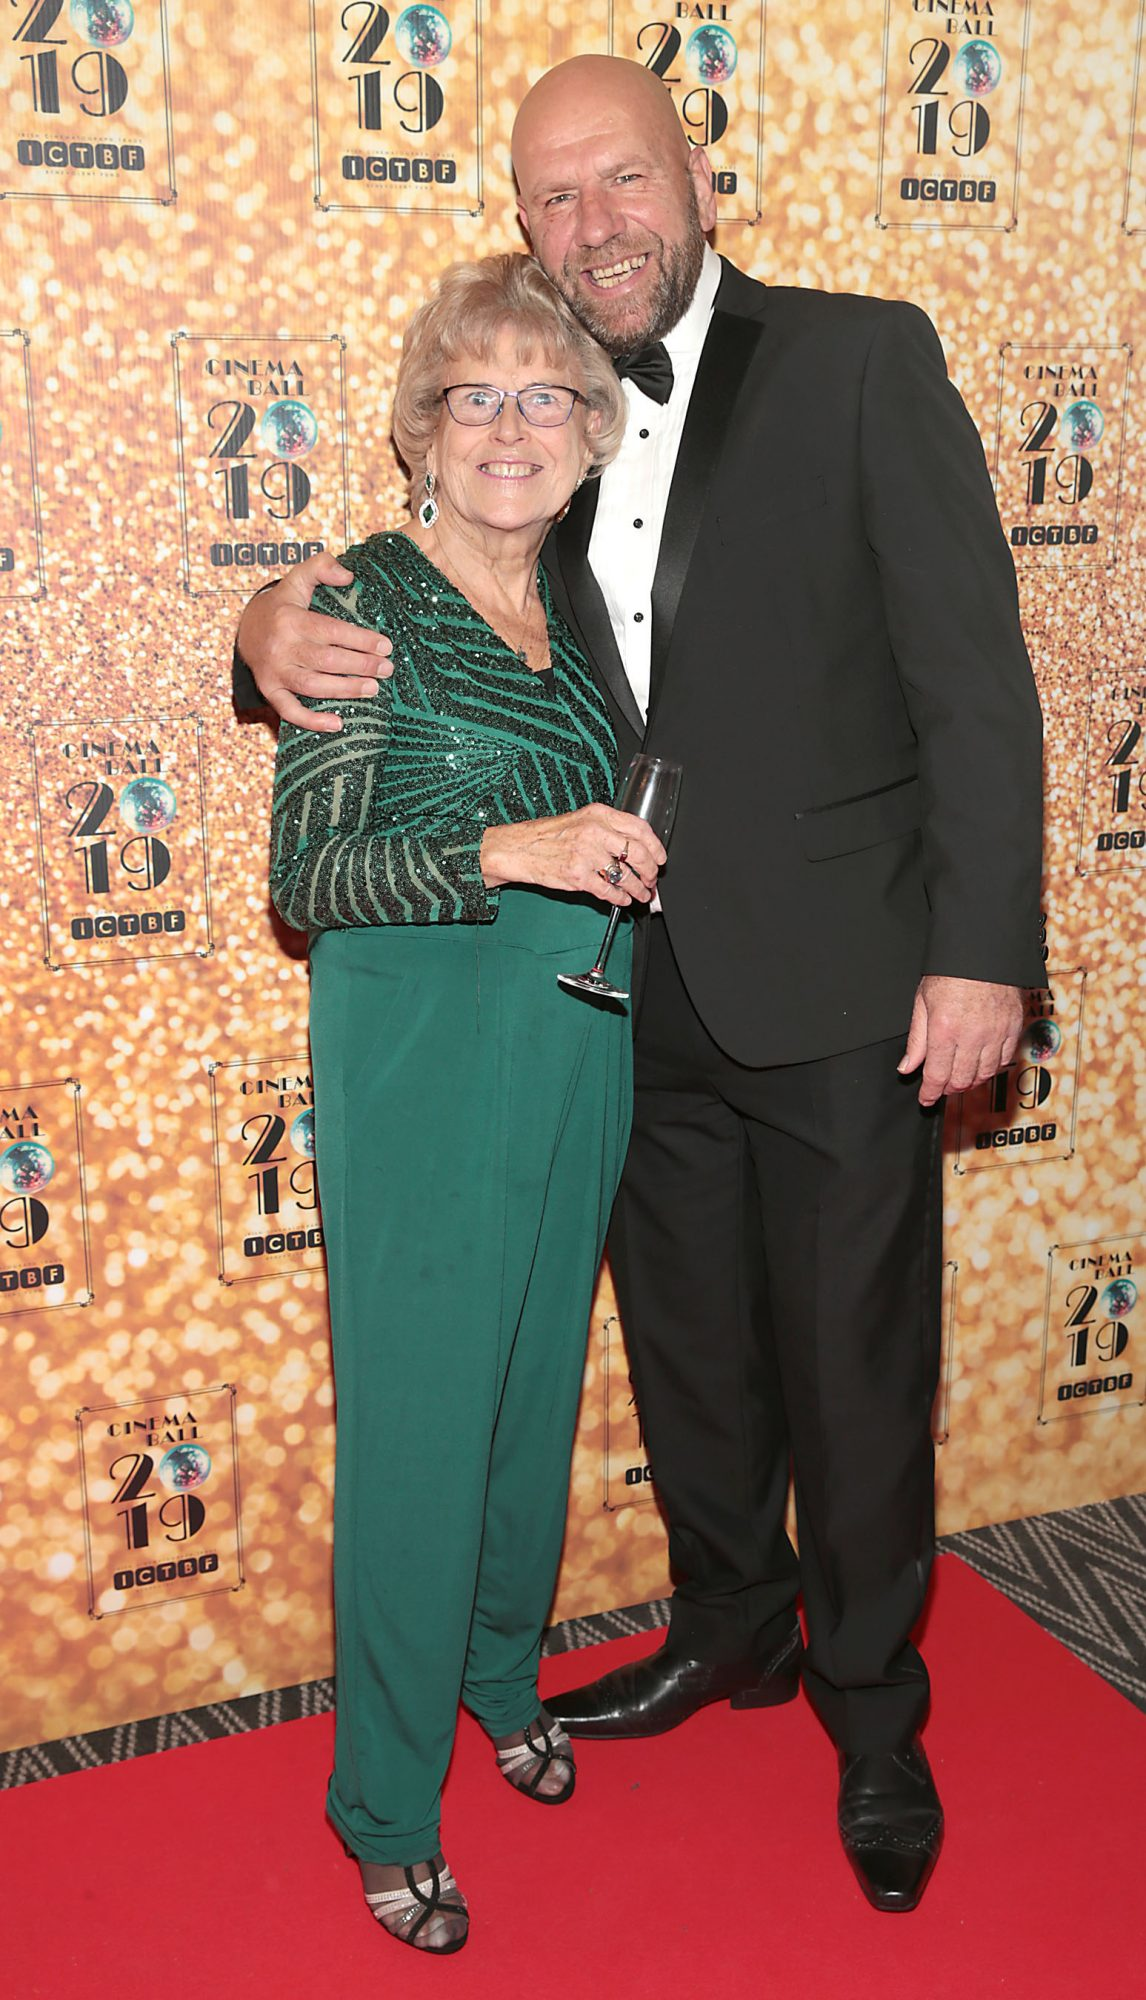 Pat Kearns and Chris Feltham pictured at the Irish Cinema Ball 2019 in aid of the Irish Cinematograph Trade Benevolent Fund (ICTBF ) at The Shelbourne Hotel, Dublin This year's theme was the iconic 'Studio 54'. Pic: Brian McEvoy.